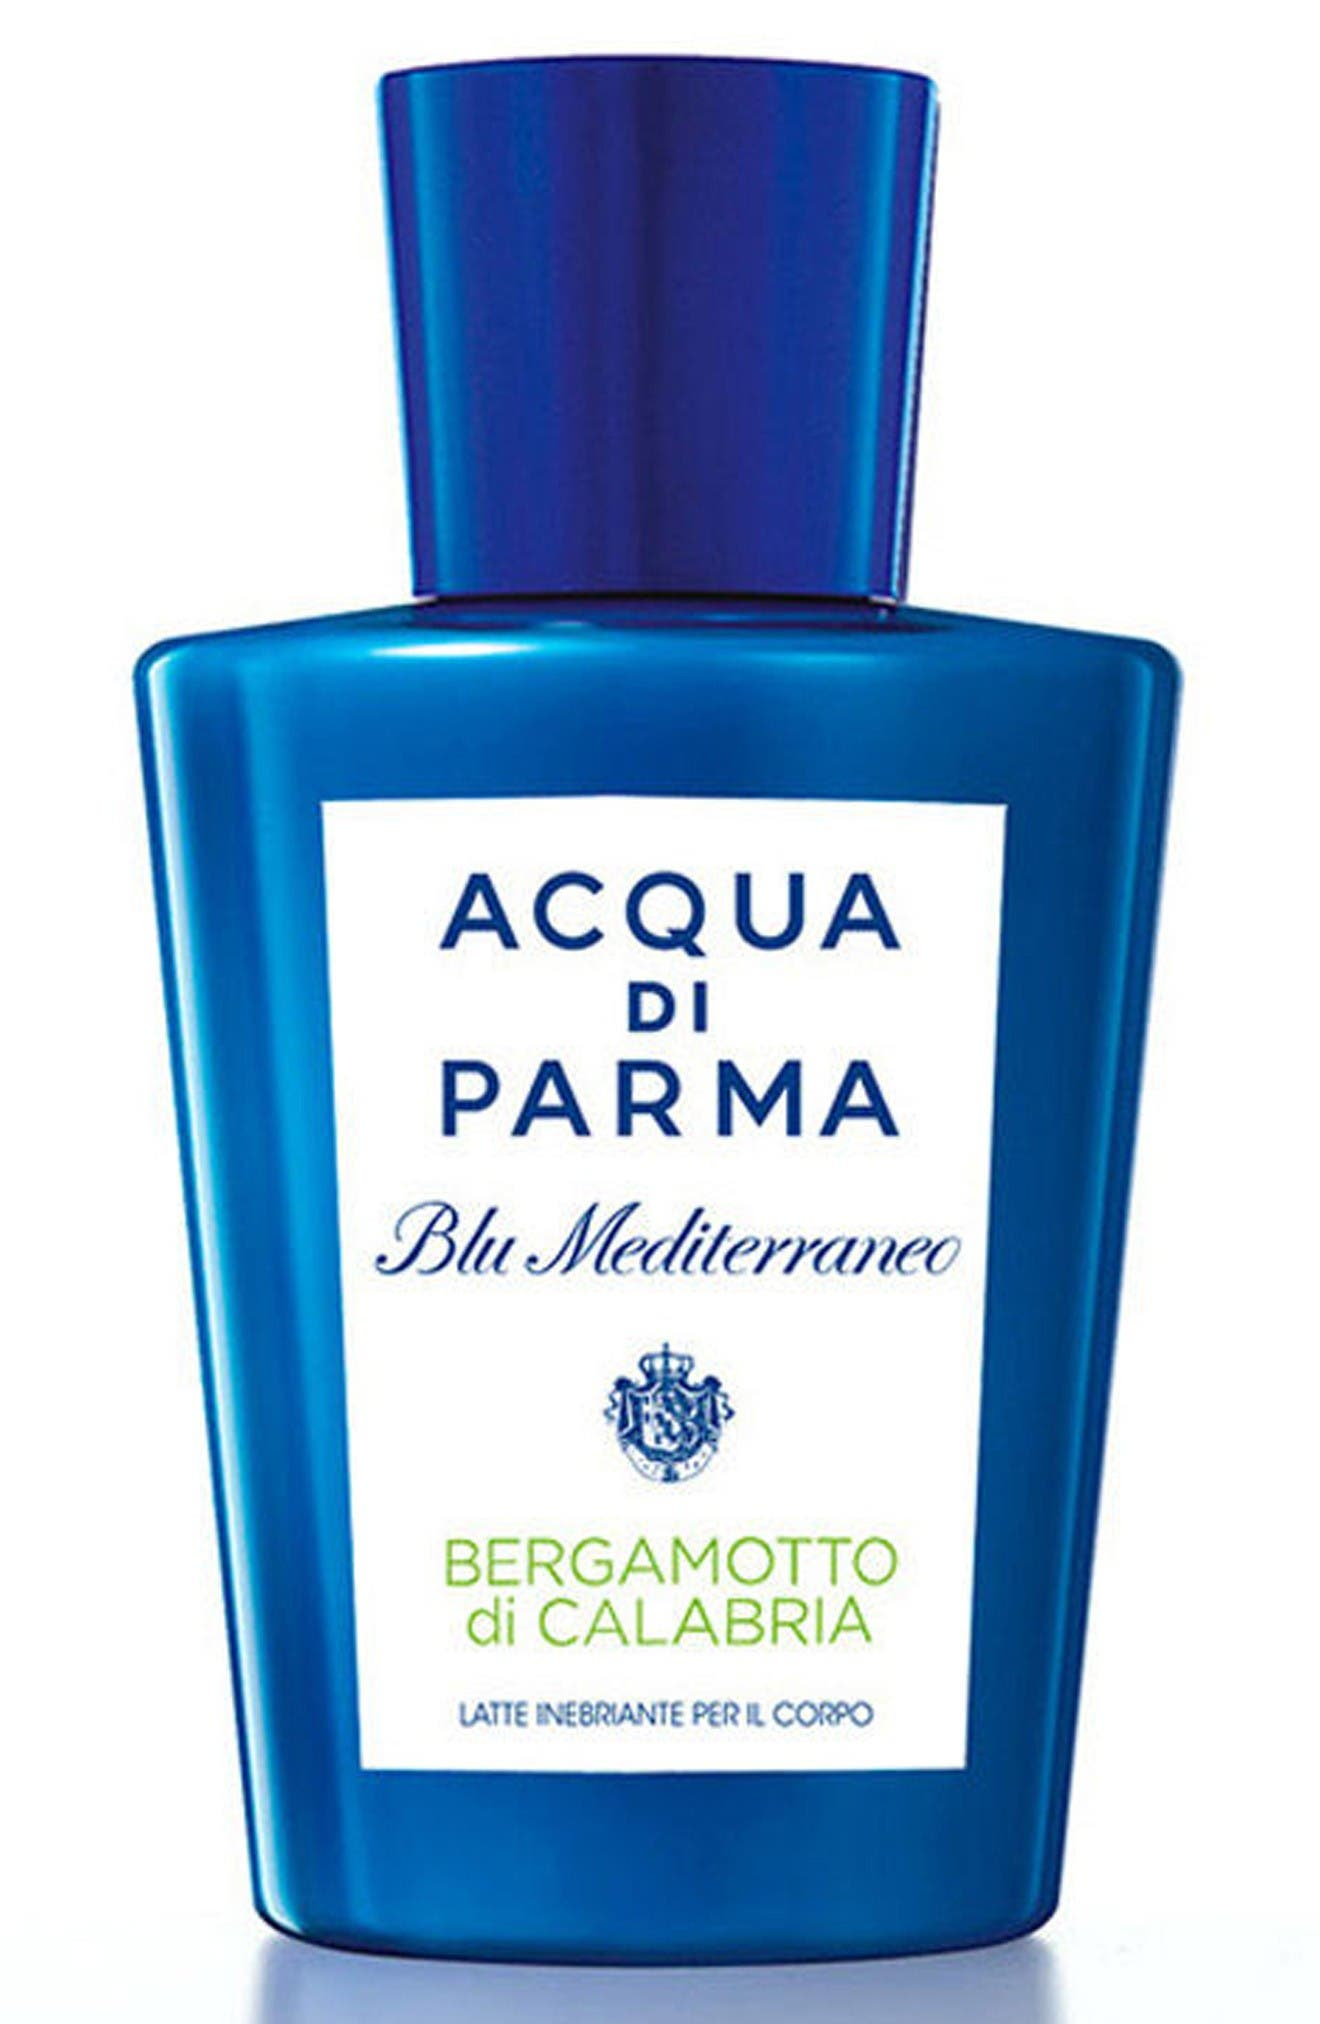 Alternate Image 1 Selected - Acqua di Parma 'Blu Mediterraneo' Bergamotto di Calabria Body Lotion